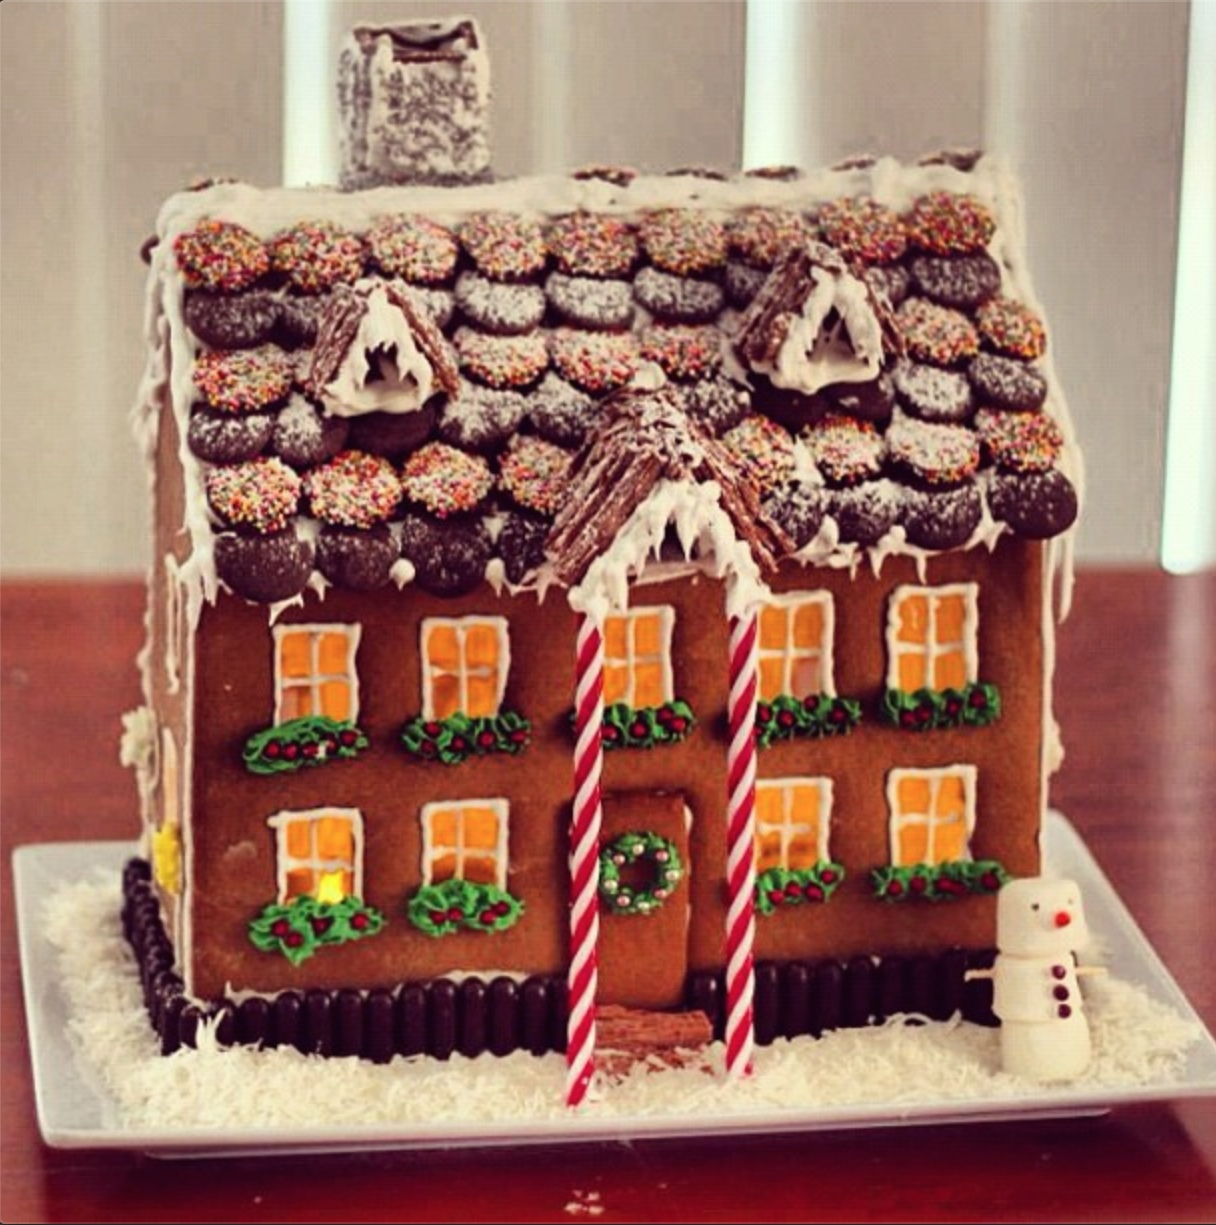 The Thud Gingerbread House template - The Thud